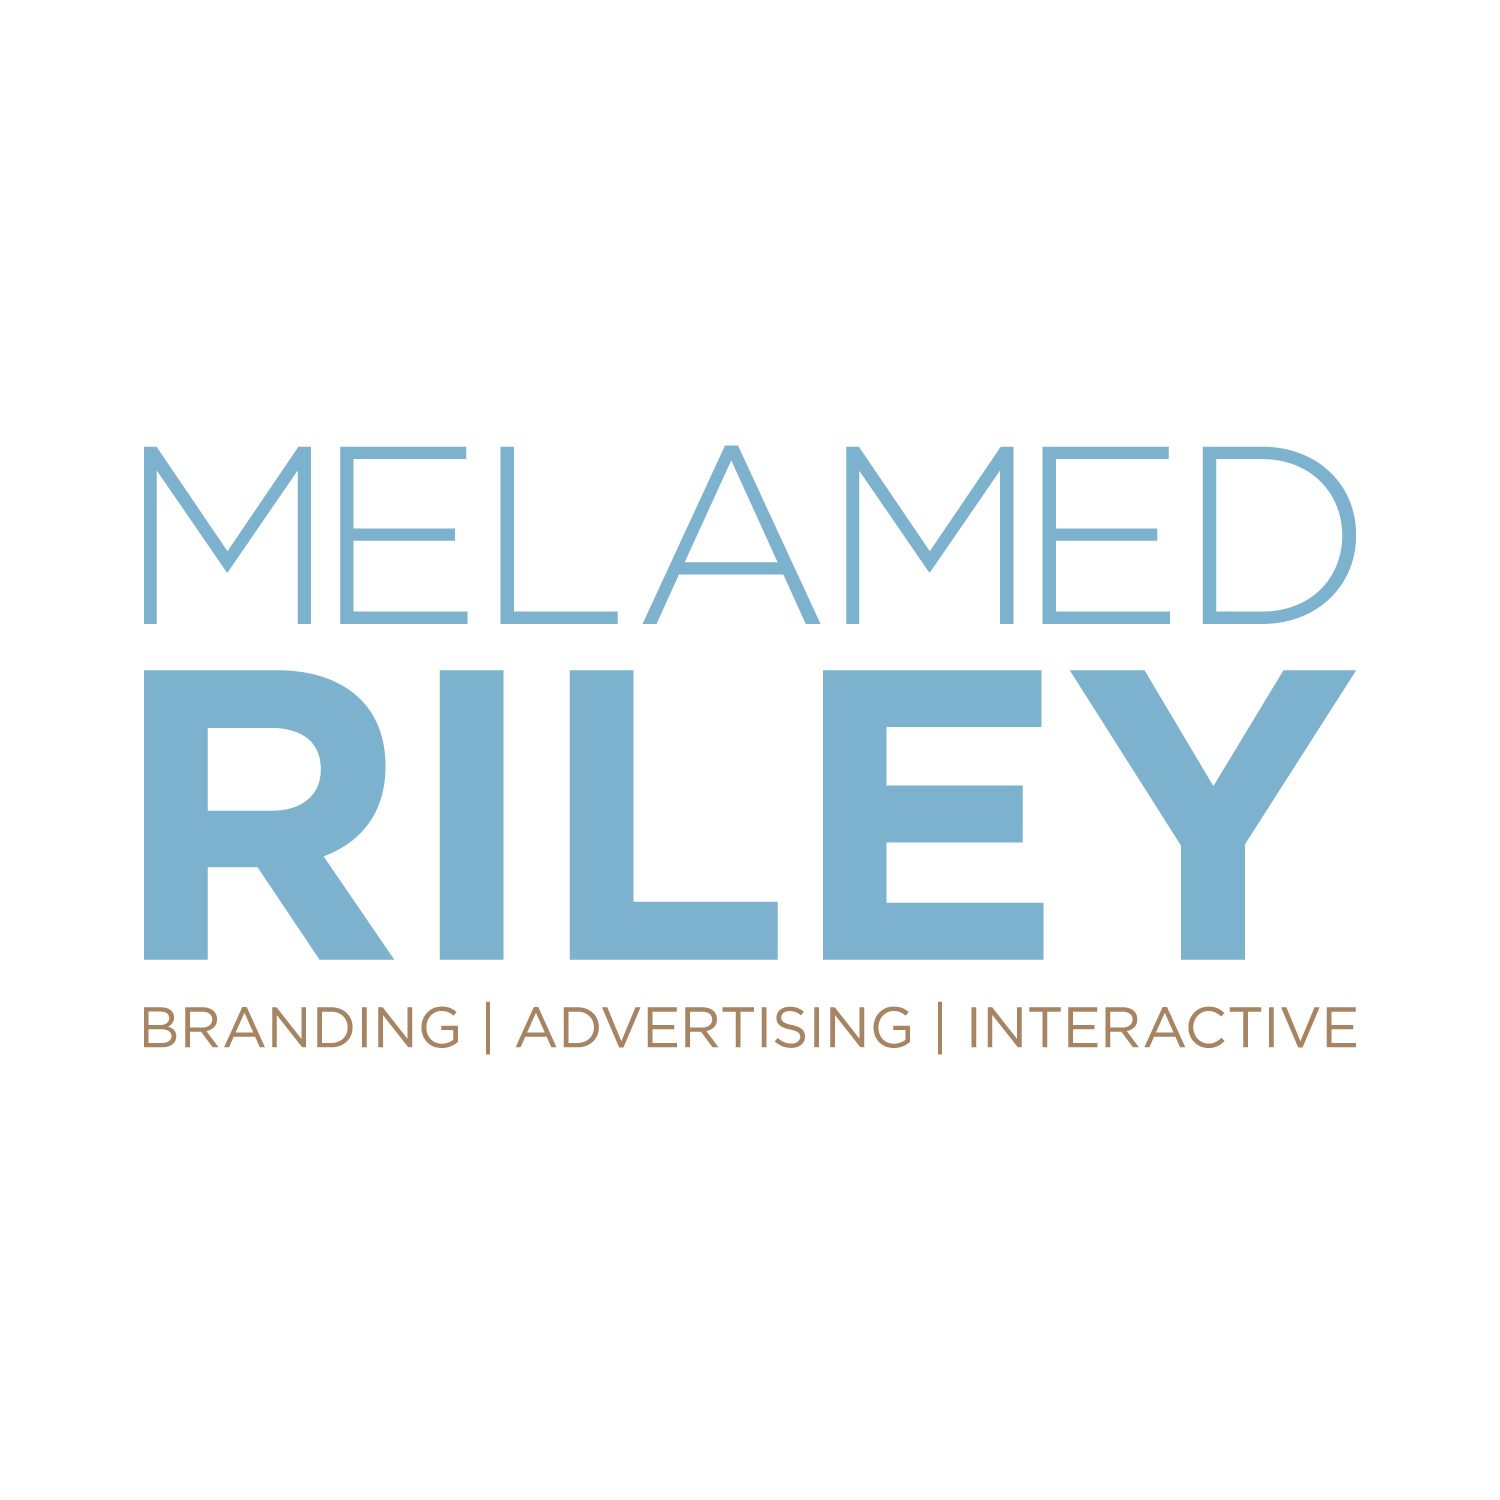 Melamed Riley